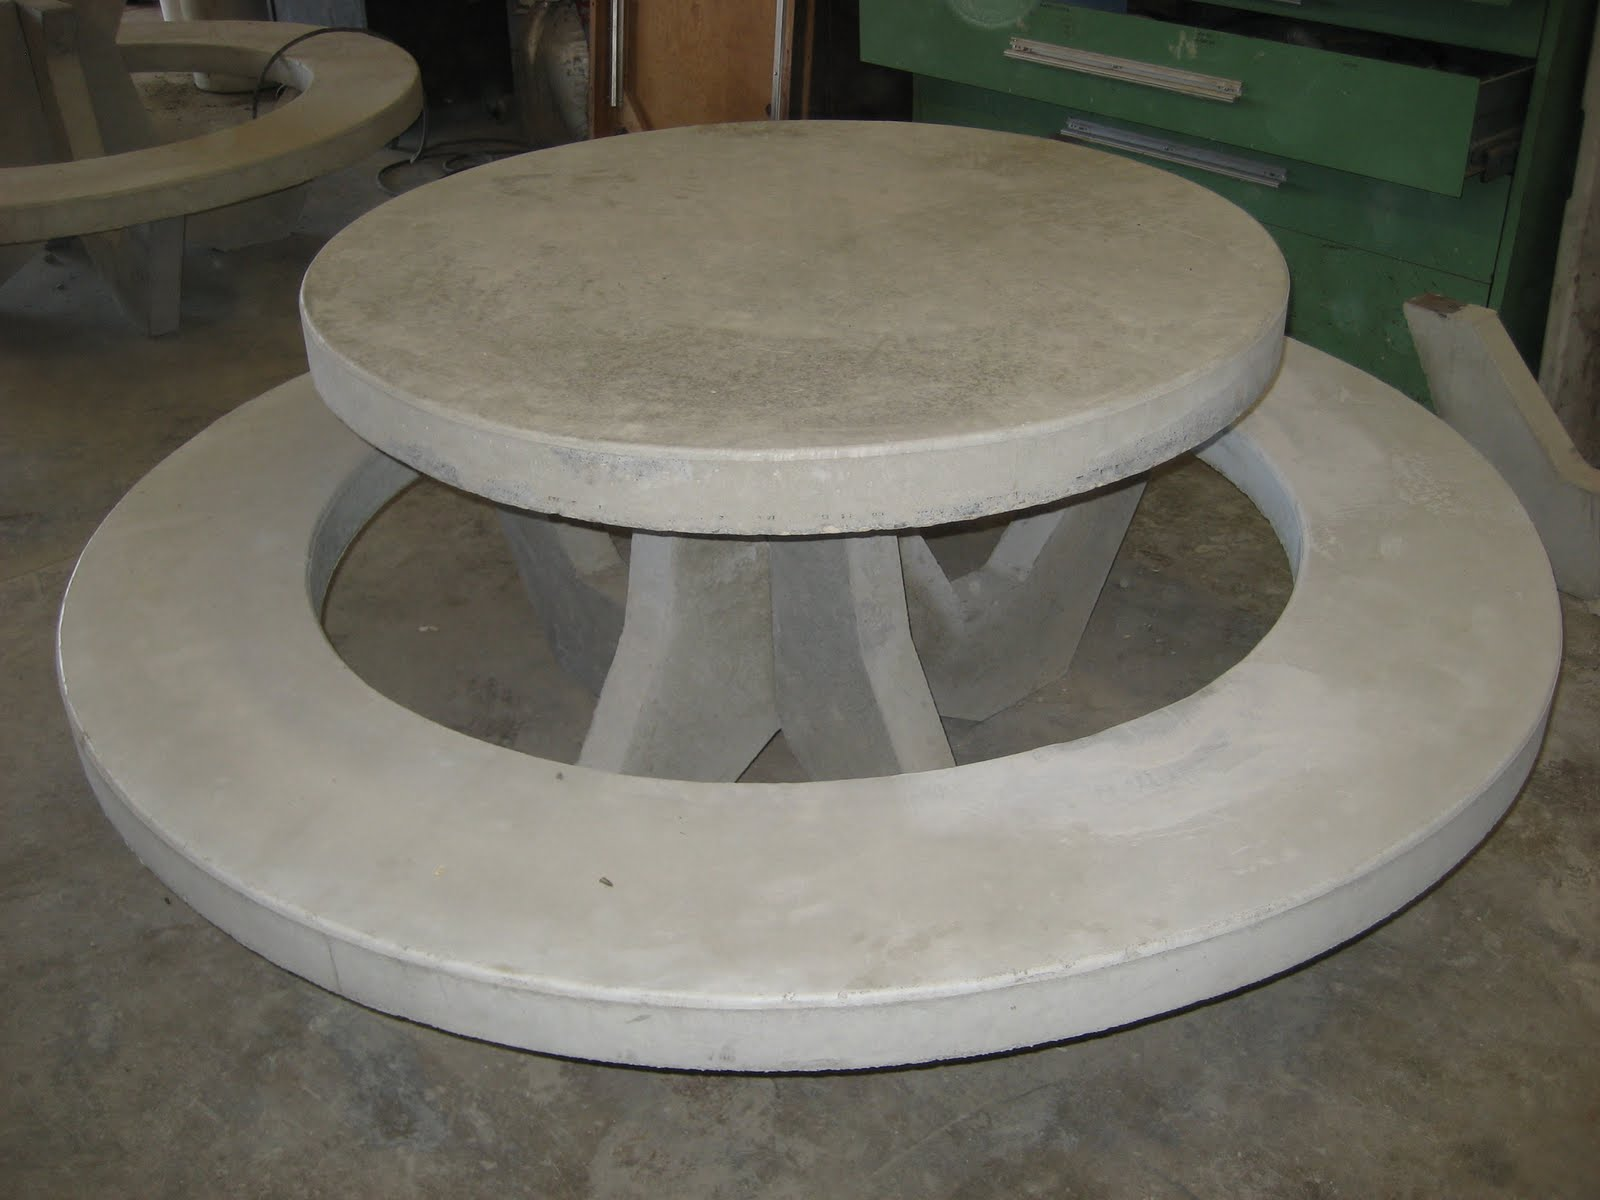 Hutterville Precast Concrete Picnic Table - Concrete picnic table forms